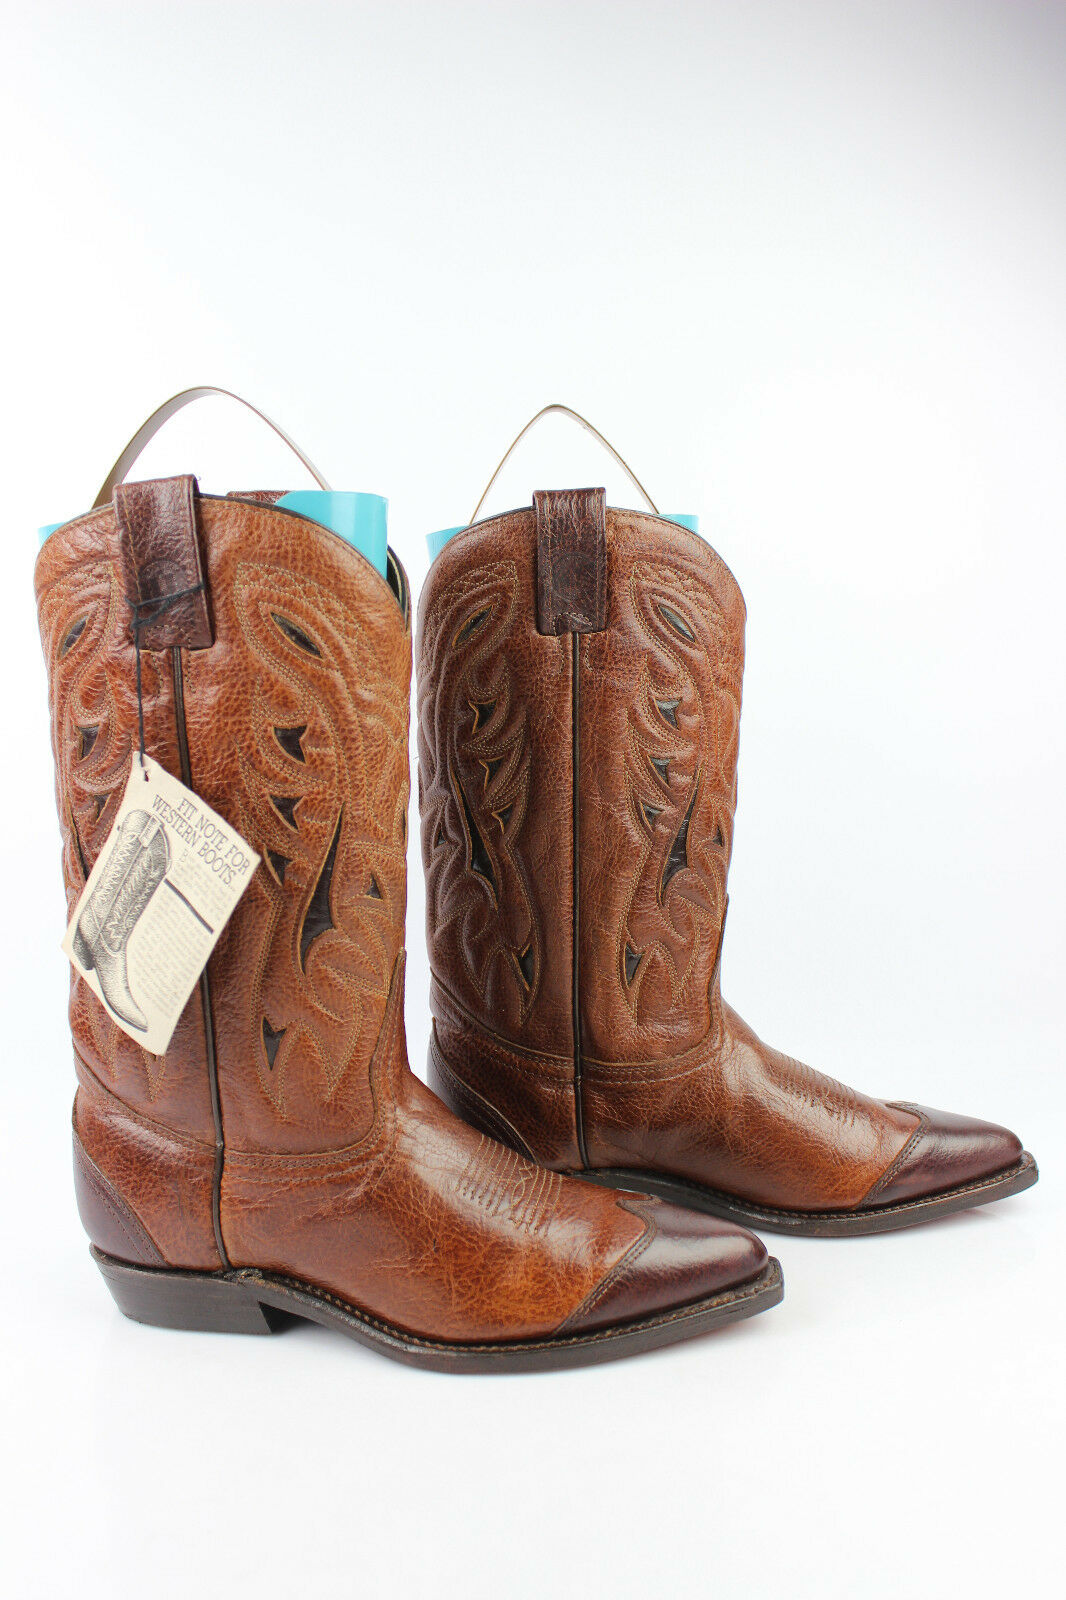 Boots Cowboy Western DOUBLE H All Brown Leather US 7,5   Fr 37,5 MINT